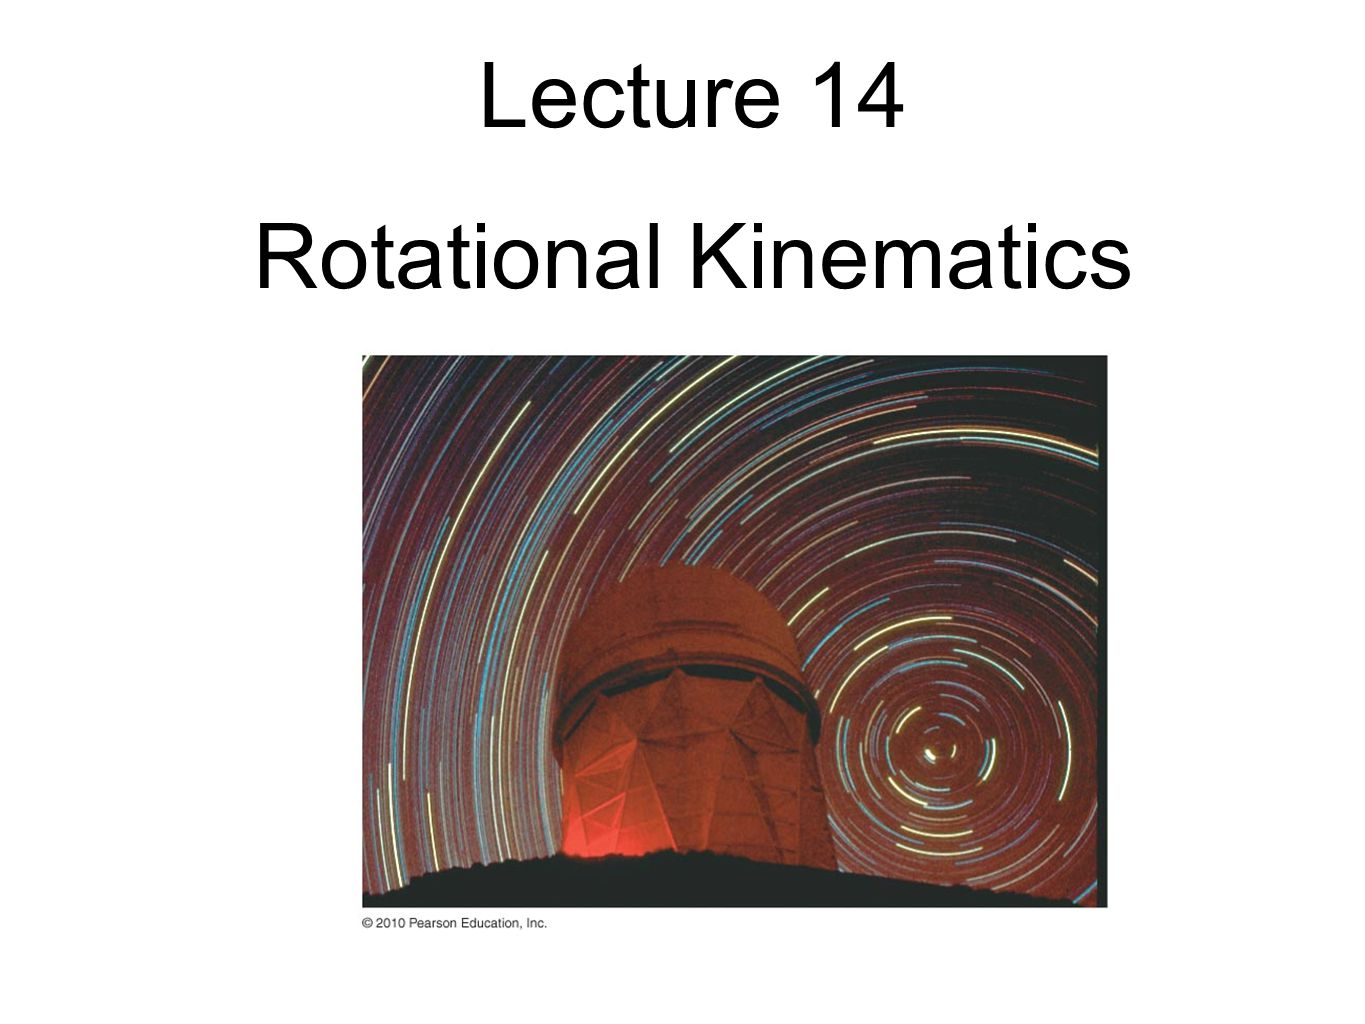 Rotational Kinematics